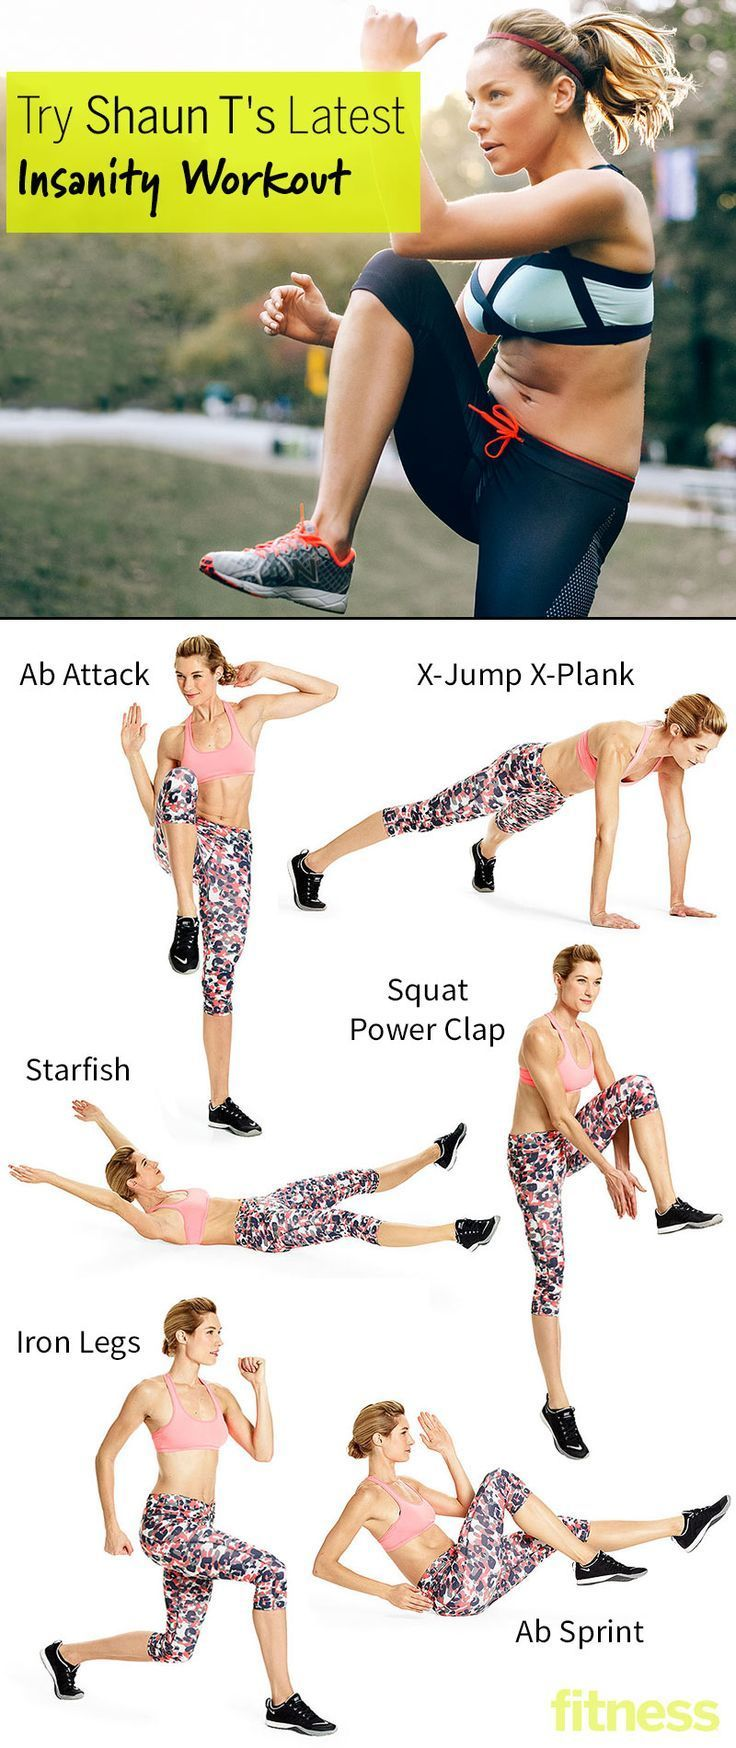 Best workout tip : Try Shaun Ts Latest Insanity Workout